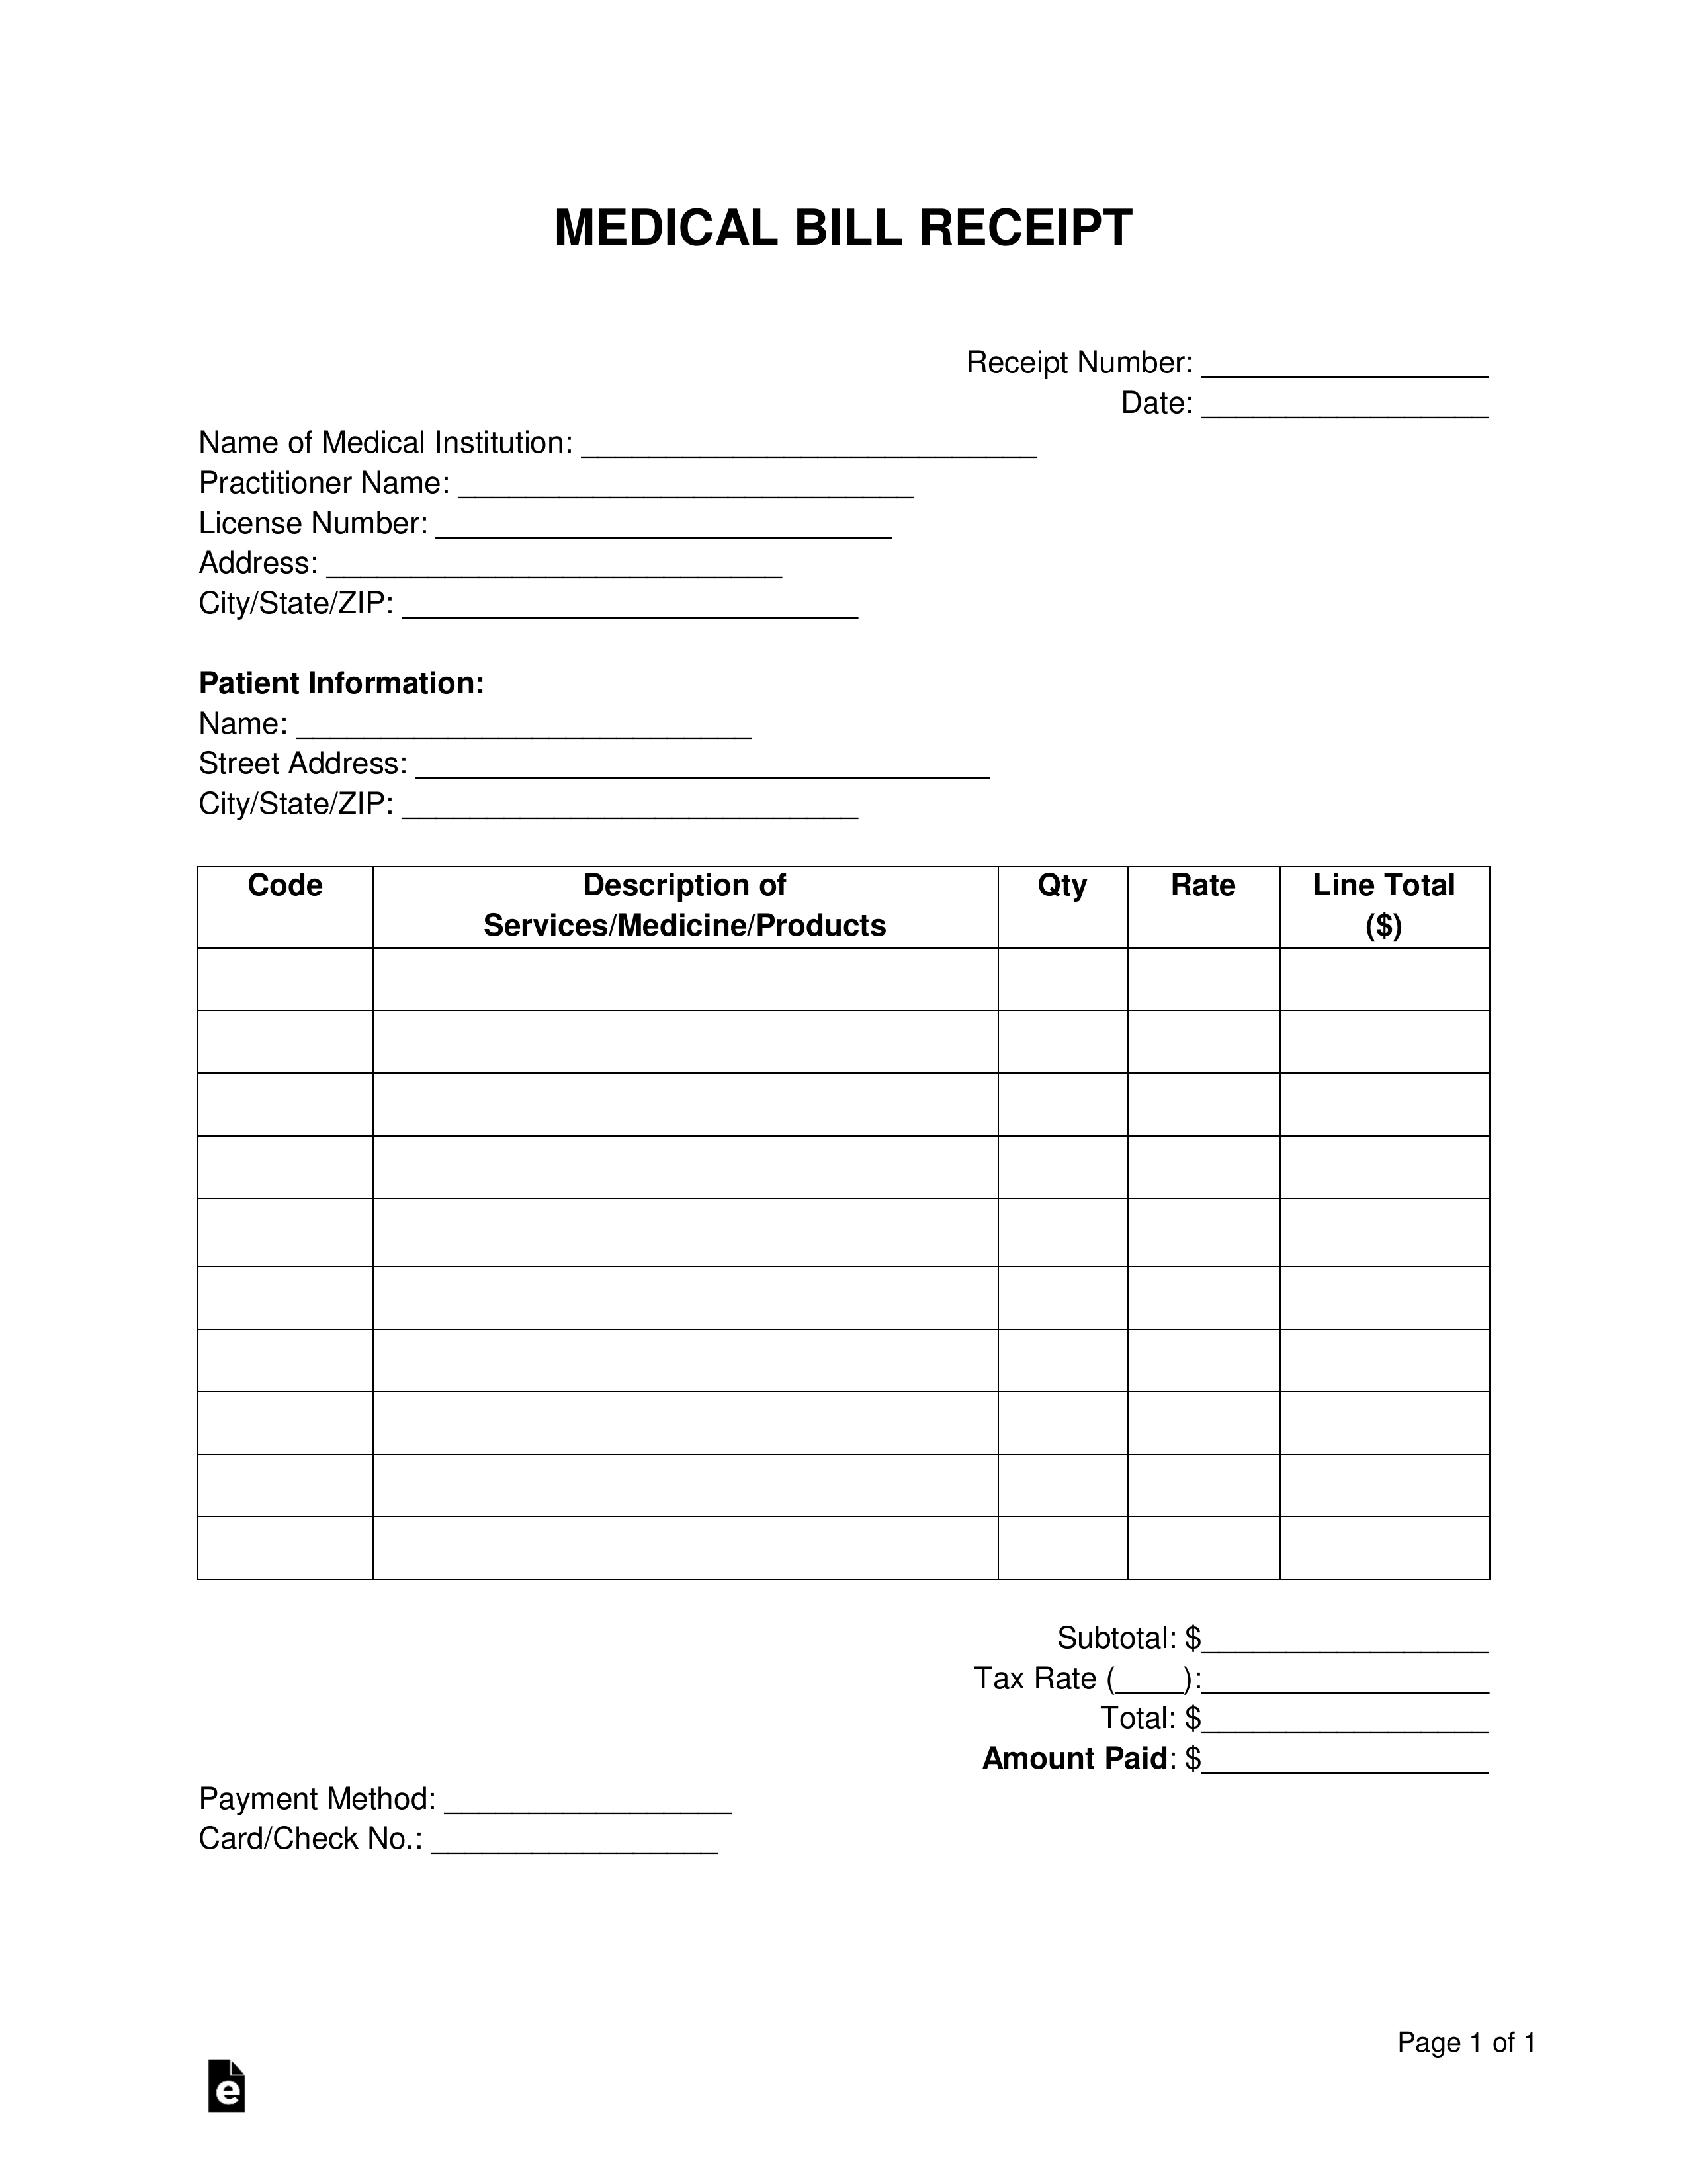 free medical bill receipt template pdf word eforms dr office receipt templates